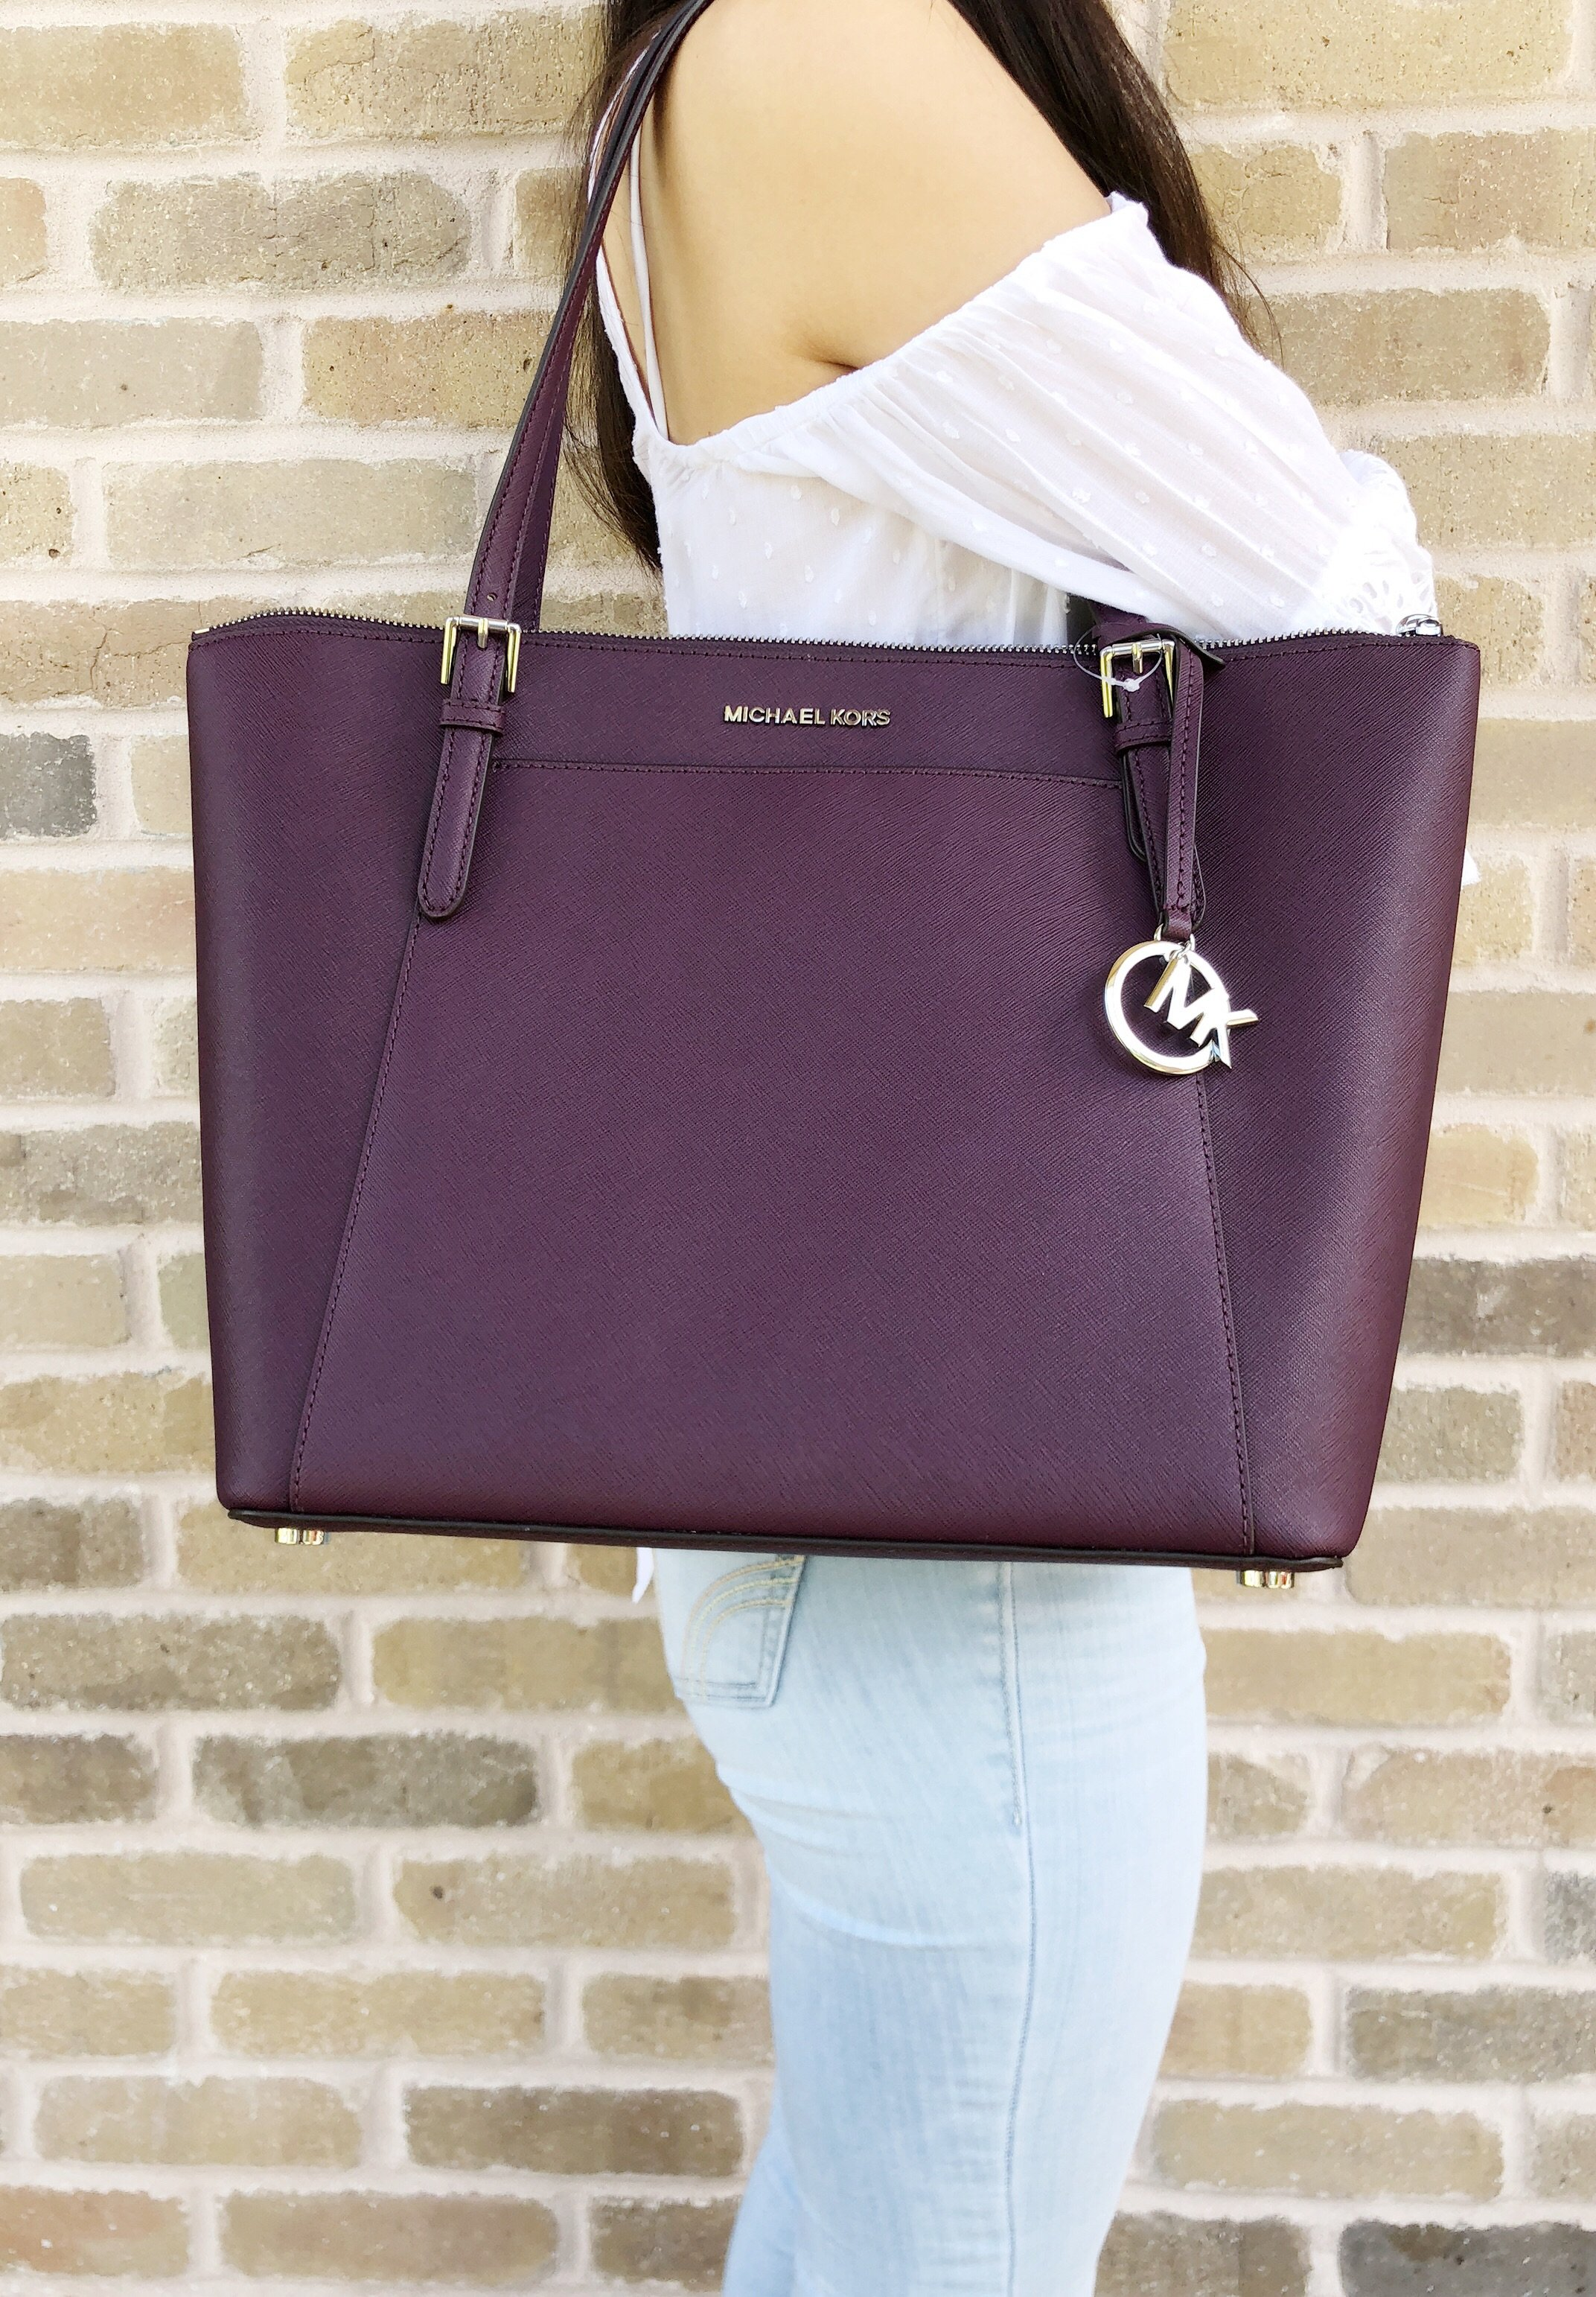 f95ceeb4c1a2ef Michael Kors Ciara Large East West Top Zip Tote Damson Purple Saffiano  #Handbags #MichaelKors #MK